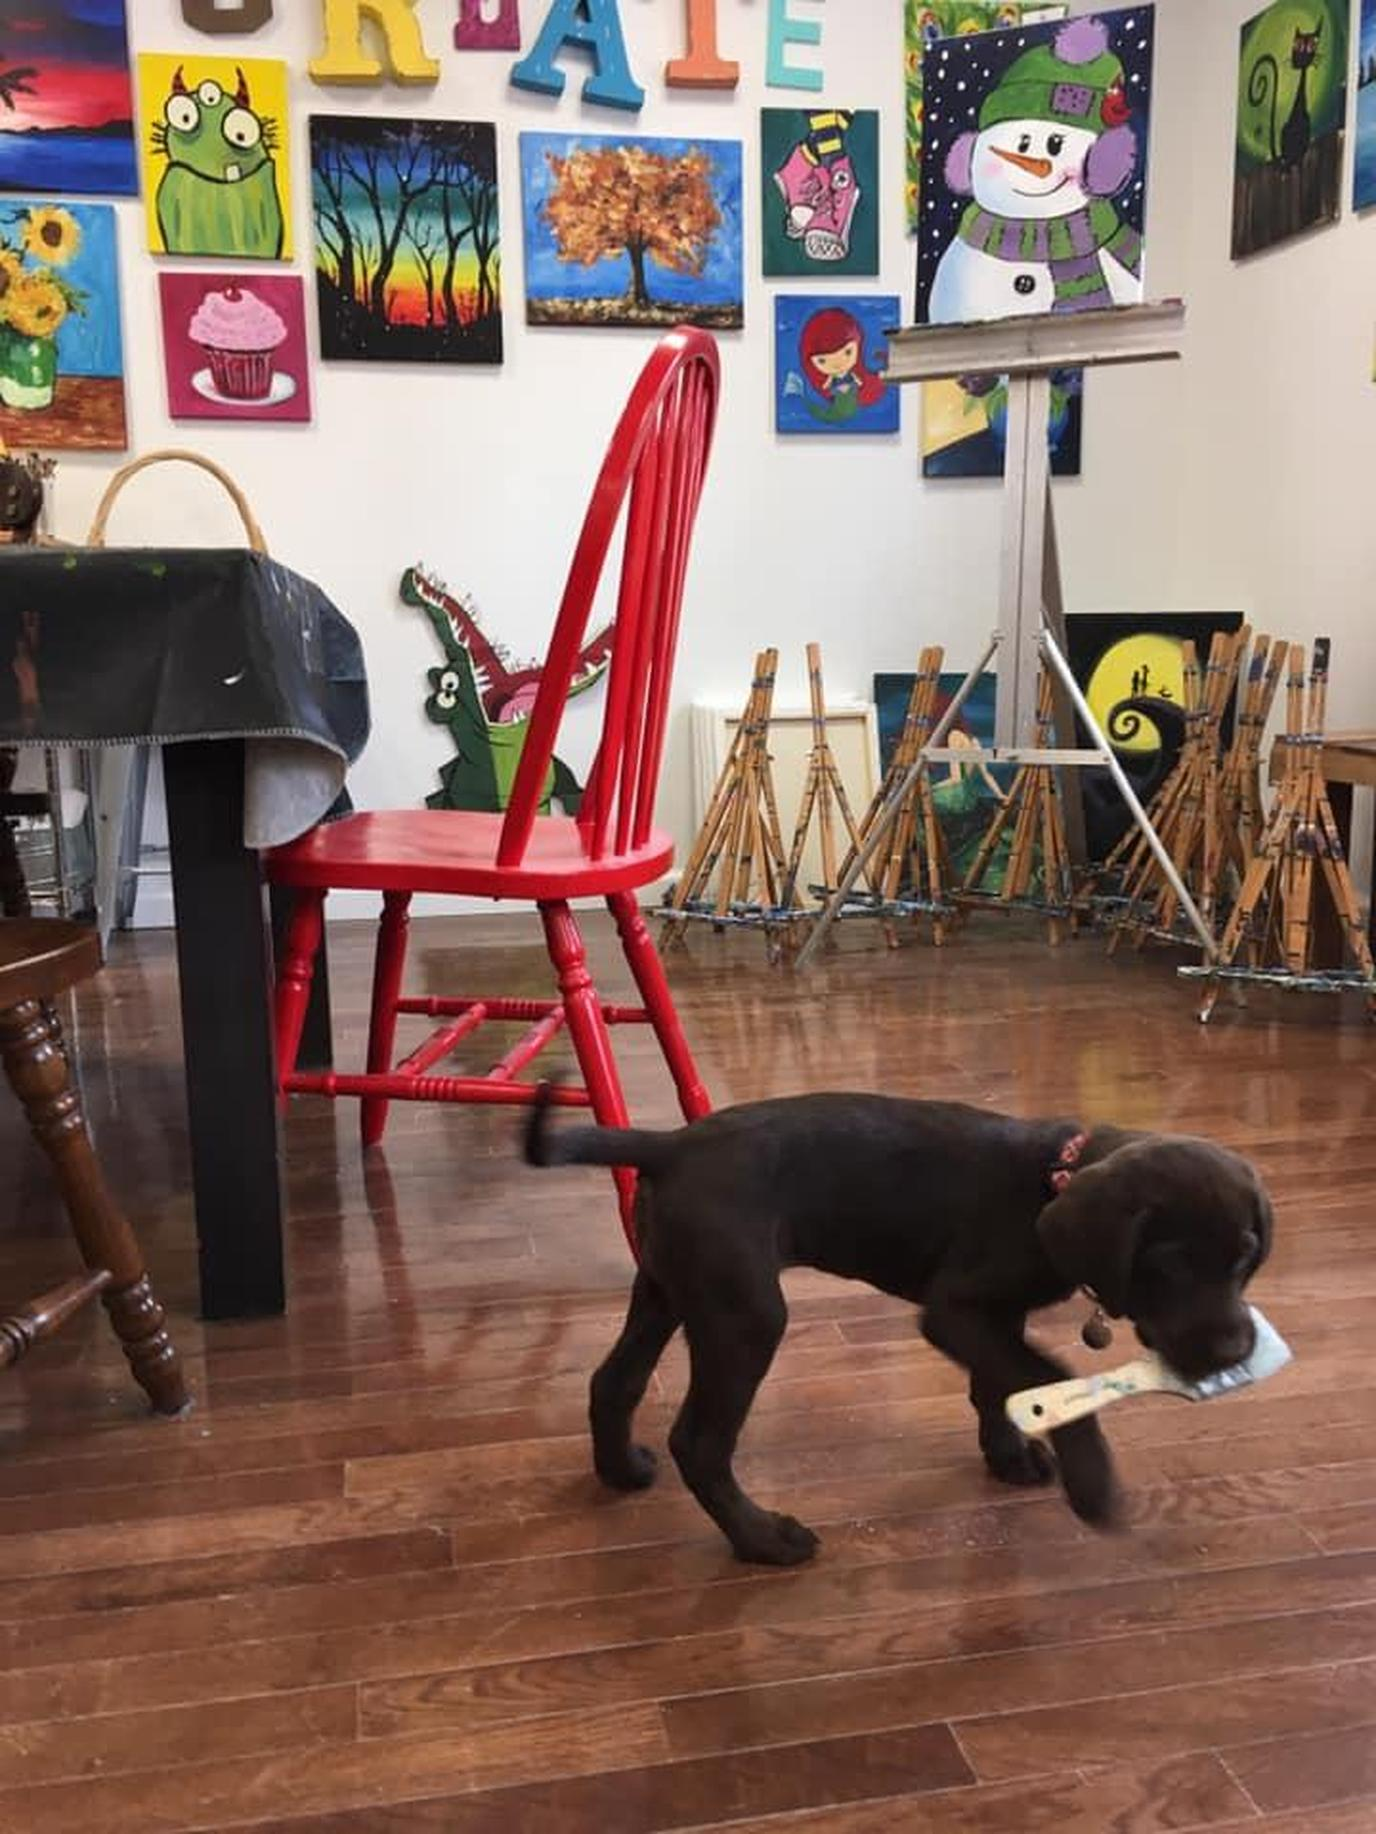 Leaping Dog Art Studios offers pet-friendly drawing lesons, pottery workshops and art parties.